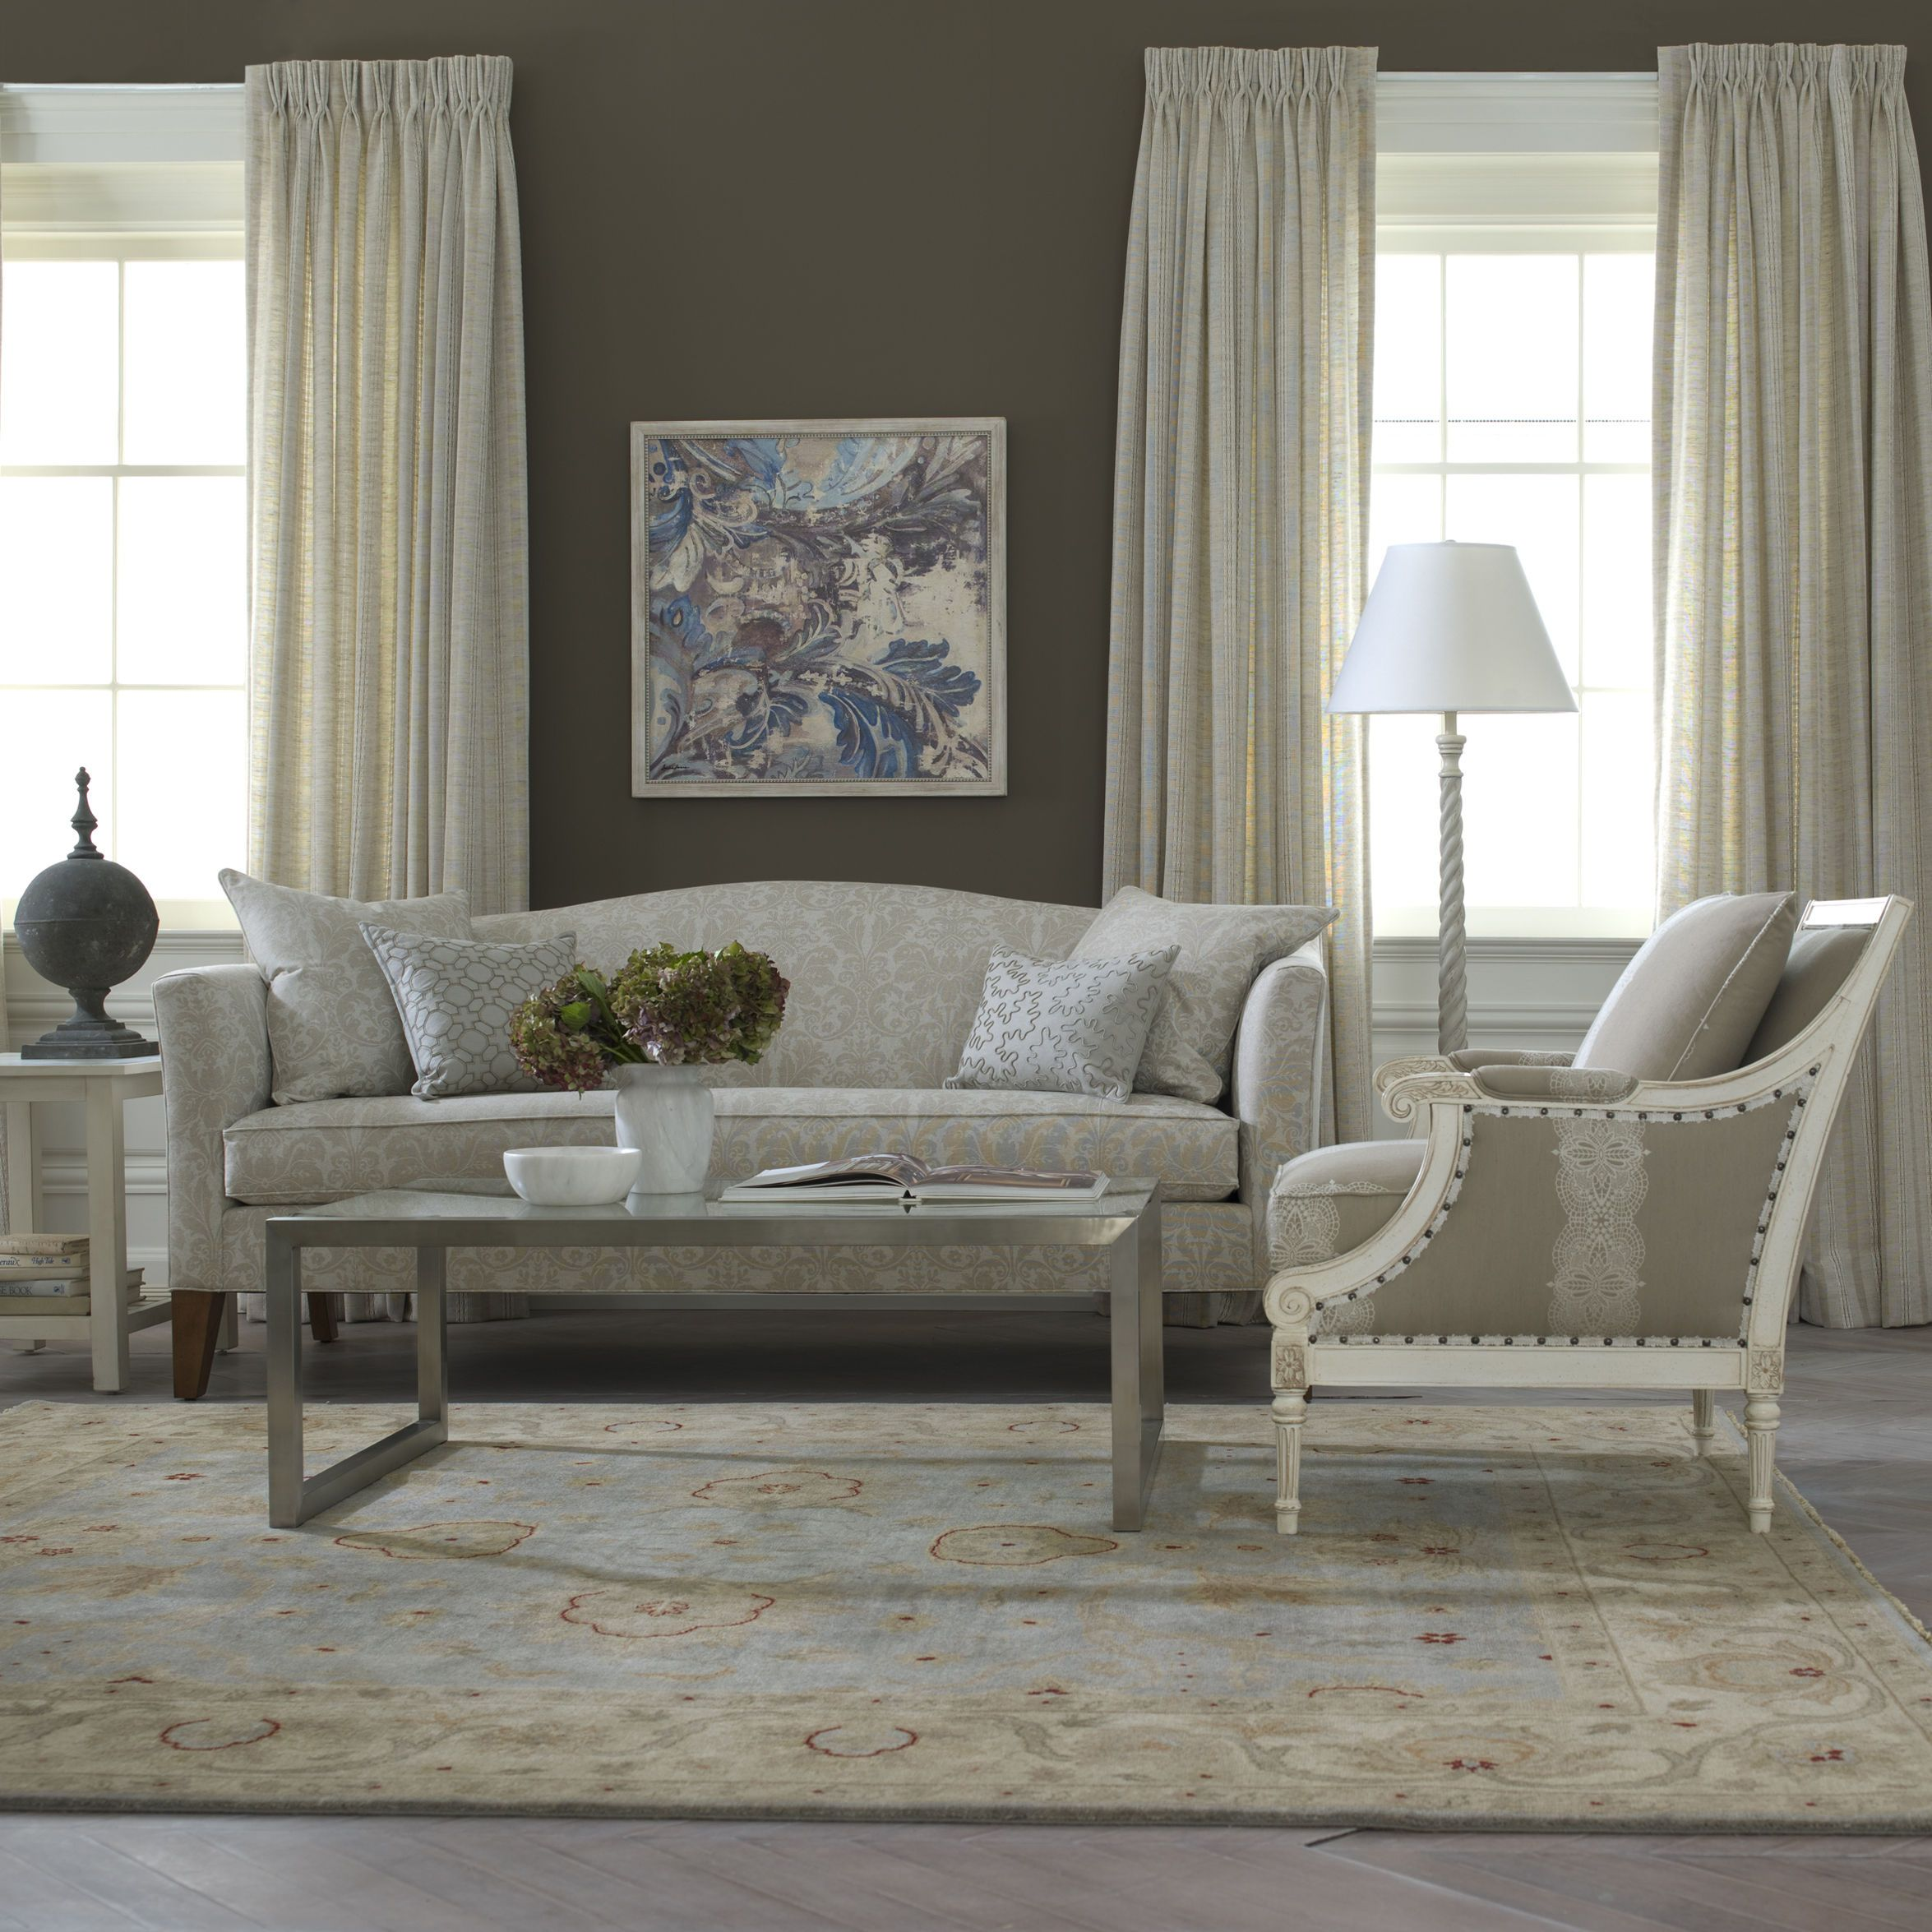 The Fairfax Chair Is Our Take On A Neoclassical Standard Livingroom Inspir